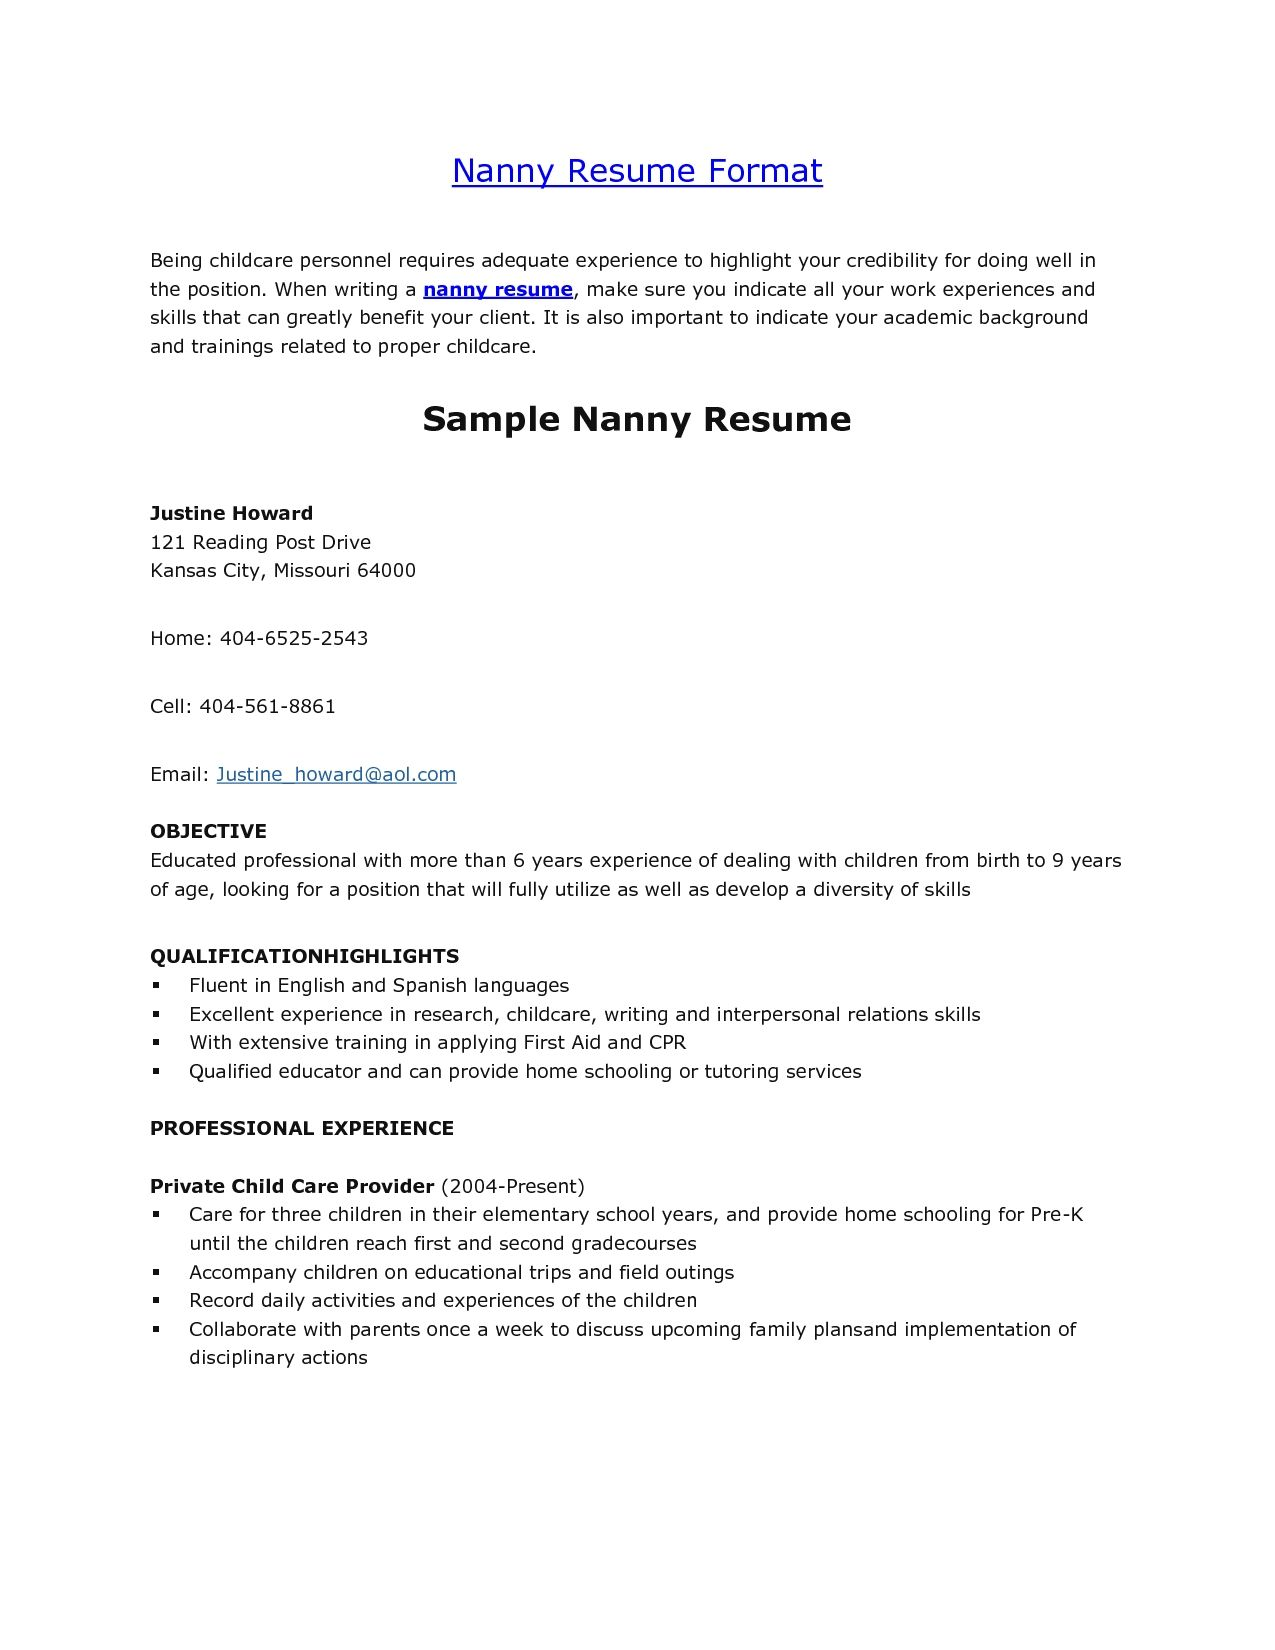 Explore Nanny Jobs, Resume Objective, And More! What To Put ...  Things To Put On A Resume For A Job